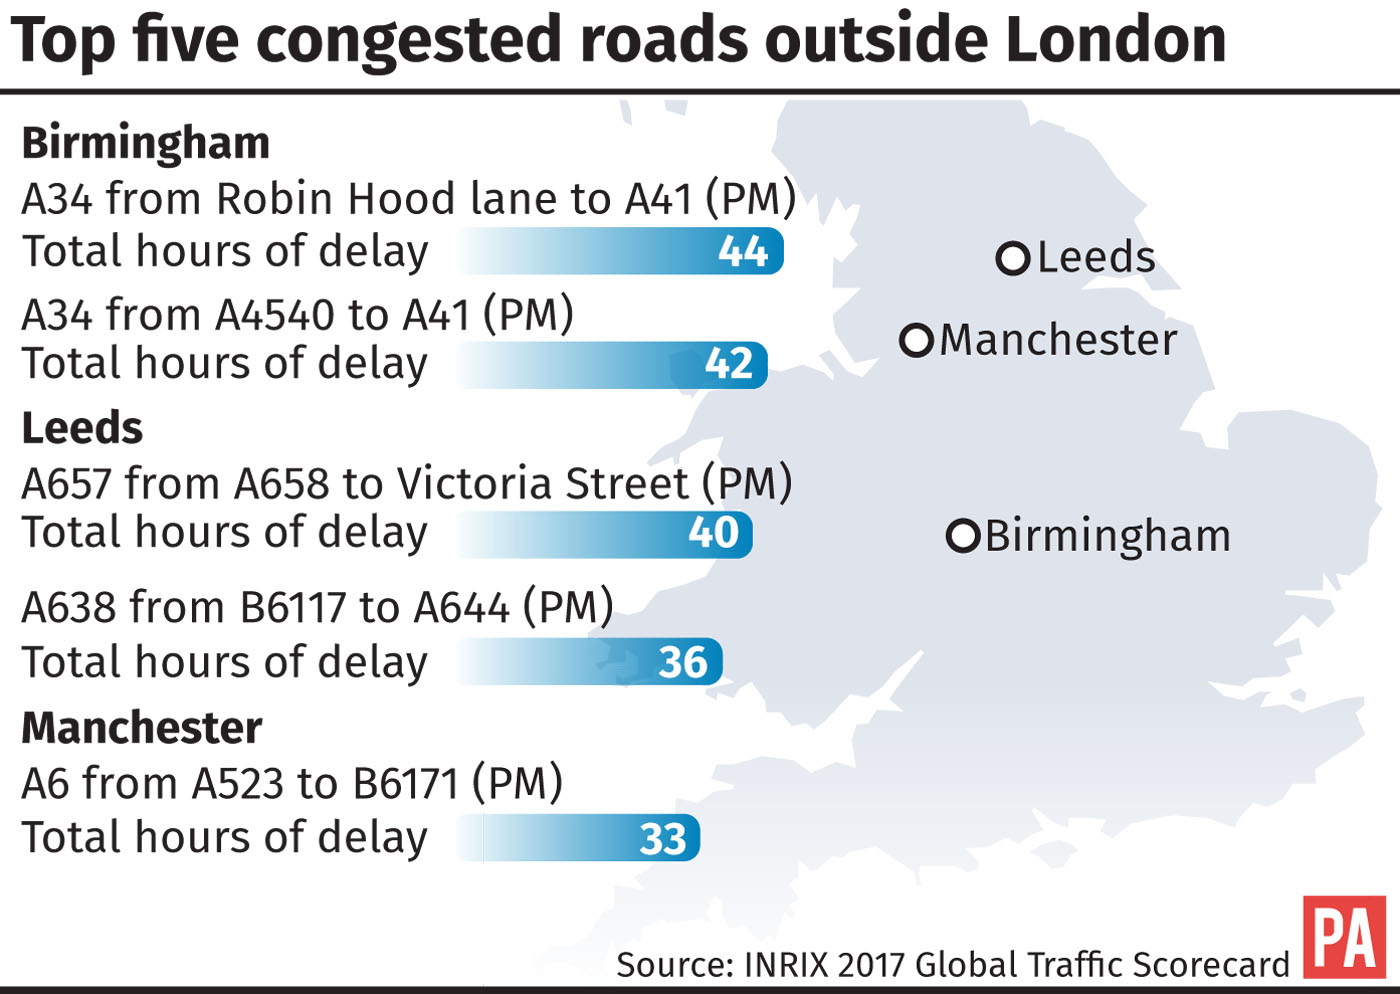 Top five congested roads outside London